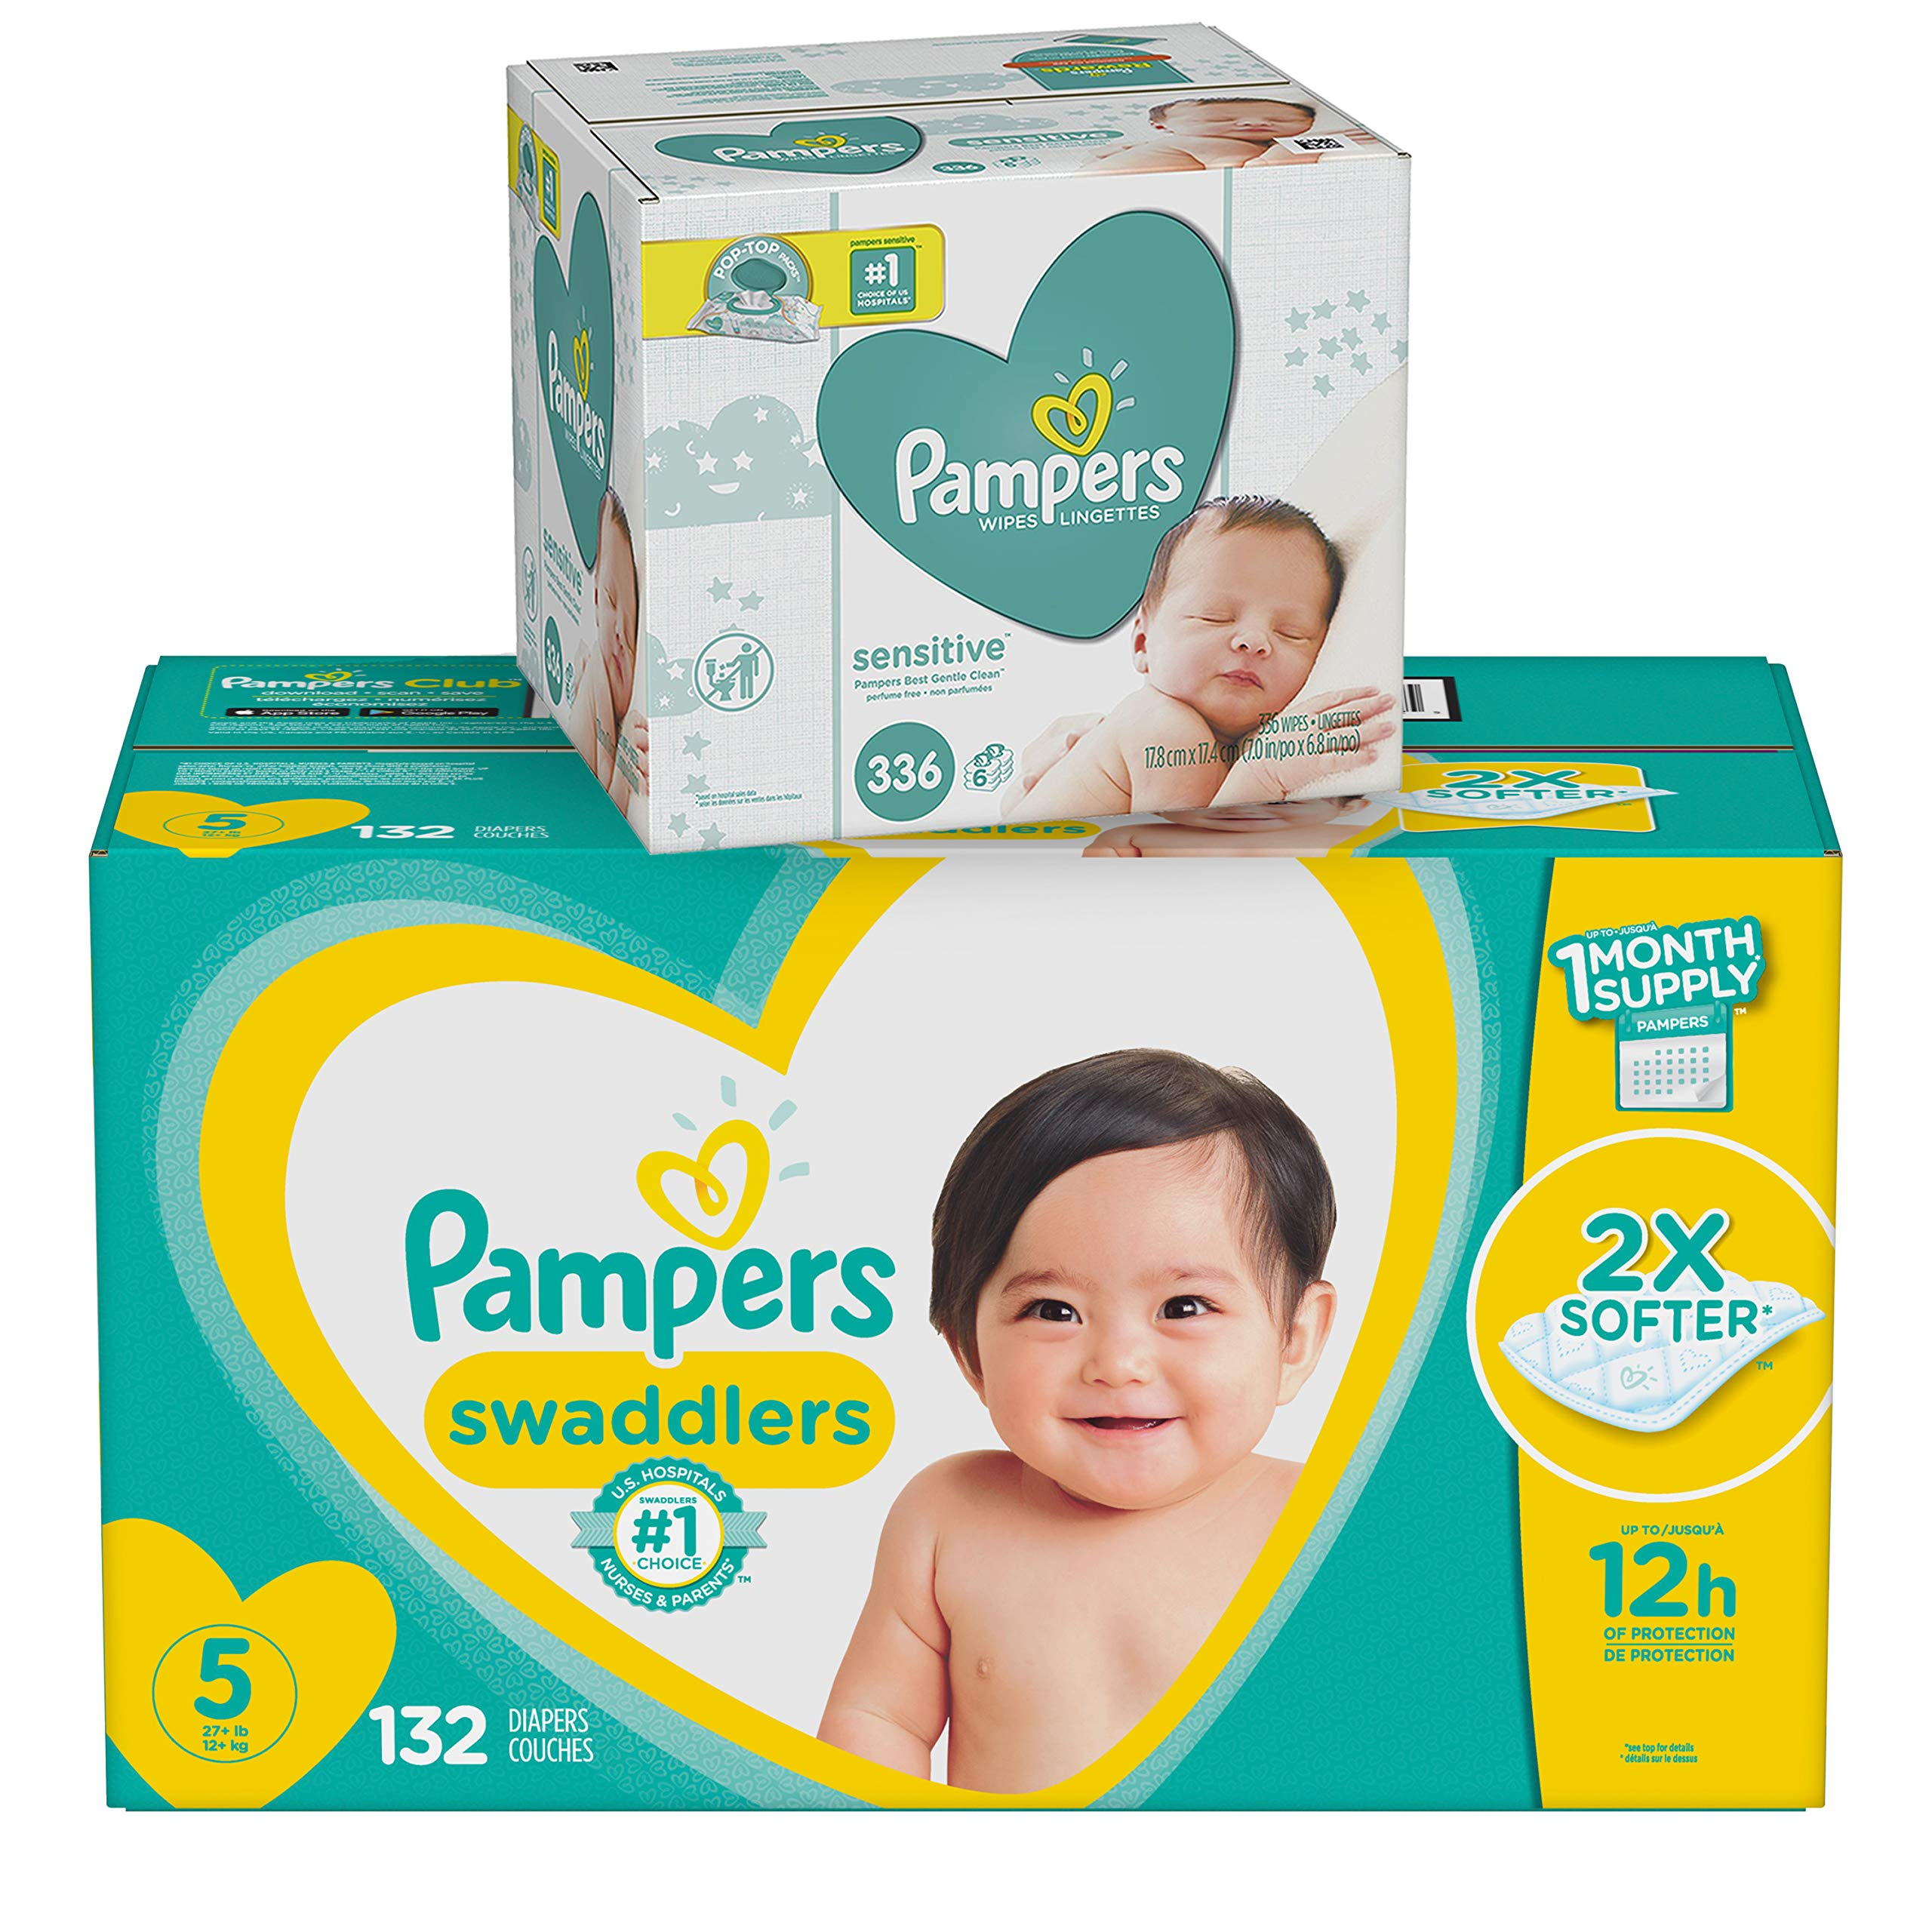 Diapers Size 5, 132 Count and Baby Wipes - Pampers Swaddlers Disposable Baby Diapers and Water Baby Wipes Sensitive Pop-Top Packs, 336 Count